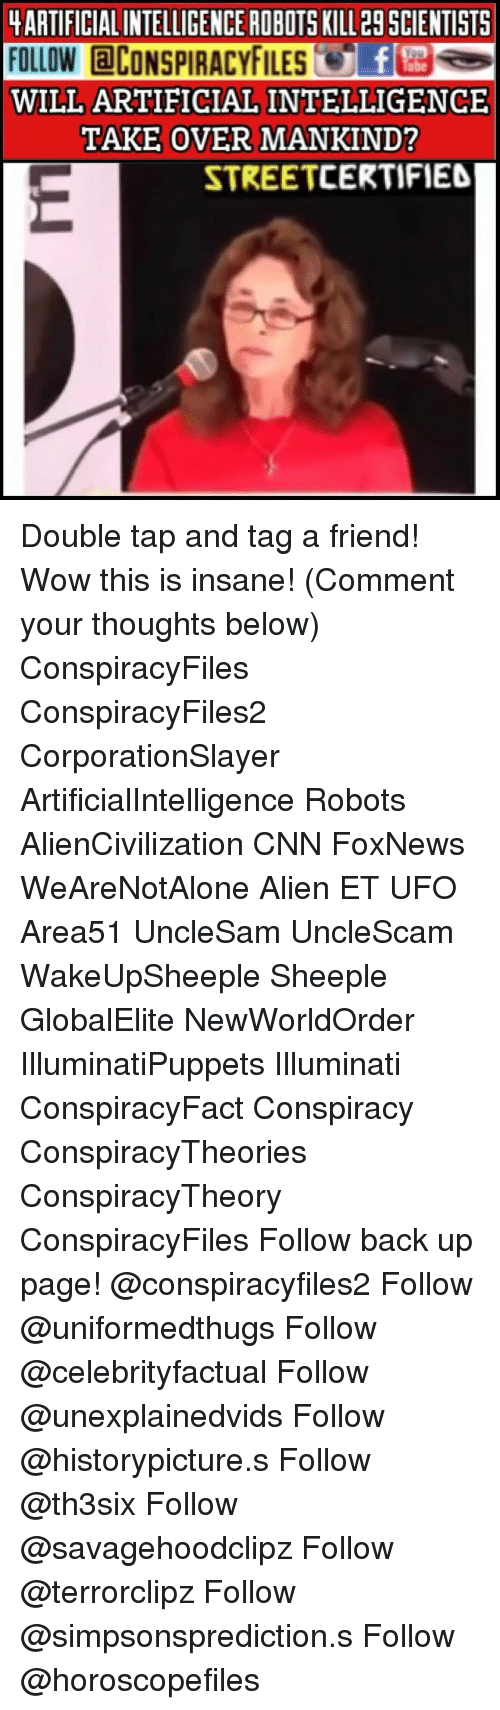 artificial intelligence: ARTIFICIAL INTELLIGENCE ROBOTS KILL 29 SCIENTISTS  FOLLOW CONSPIRACYFILES  WILL ARTIFICIAL INTELLIGENCE  TAKE OVER MANKIND?  STREETCERTIFIE Double tap and tag a friend! Wow this is insane! (Comment your thoughts below) ConspiracyFiles ConspiracyFiles2 CorporationSlayer ArtificialIntelligence Robots AlienCivilization CNN FoxNews WeAreNotAlone Alien ET UFO Area51 UncleSam UncleScam WakeUpSheeple Sheeple GlobalElite NewWorldOrder IlluminatiPuppets Illuminati ConspiracyFact Conspiracy ConspiracyTheories ConspiracyTheory ConspiracyFiles Follow back up page! @conspiracyfiles2 Follow @uniformedthugs Follow @celebrityfactual Follow @unexplainedvids Follow @historypicture.s Follow @th3six Follow @savagehoodclipz Follow @terrorclipz Follow @simpsonsprediction.s Follow @horoscopefiles